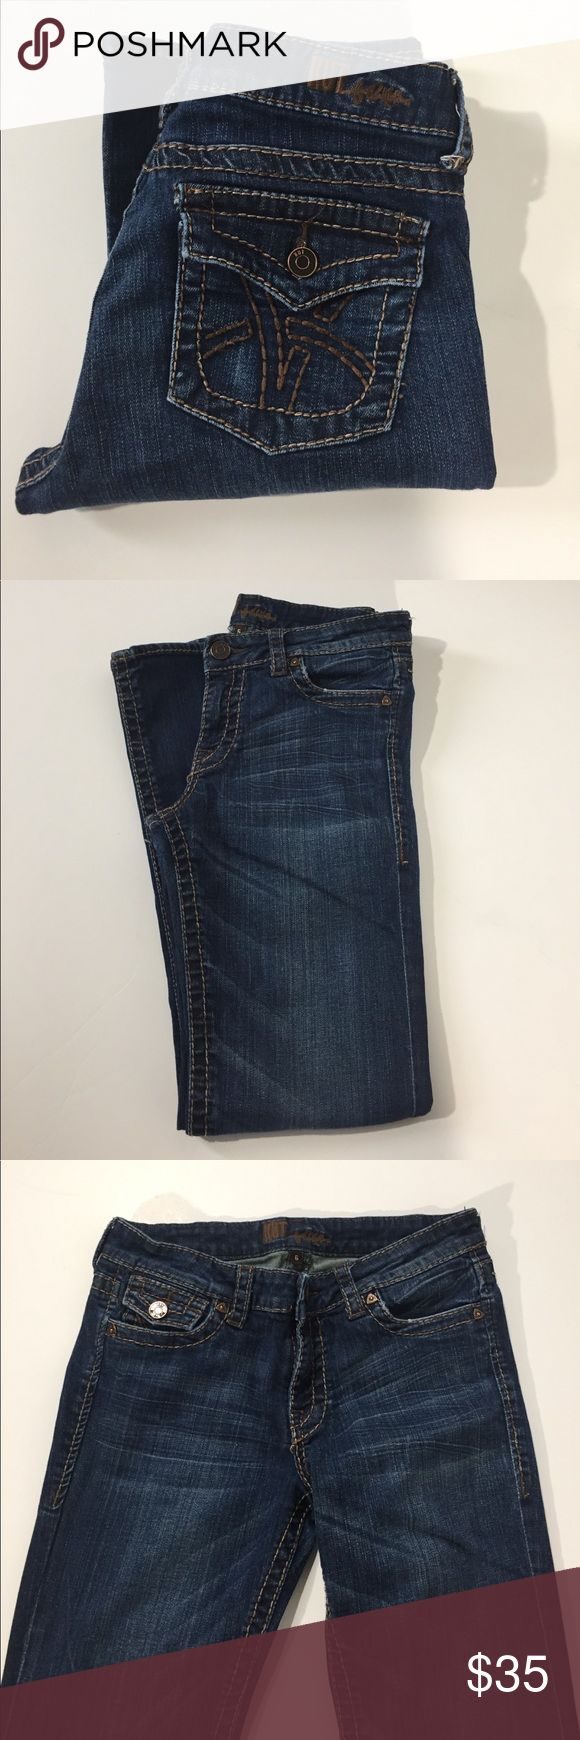 """Kut From The Kloth Low Rise Stretch Boot Cut Jeans Excellent condition. Low rise, stretch, boot cut. Back flap pockets. Flap coin pocket. Darker wash. Extremely minor distressing to hems. A few threads are starting to loosen on back pocket stitching. Factory fading. Size 6. 99% cotton, 1% spandex. Waist about 30"""", rise about 8.5"""", inseam about 31"""". Not from a smoke free house. 614 Kut from the Kloth Jeans Boot Cut"""